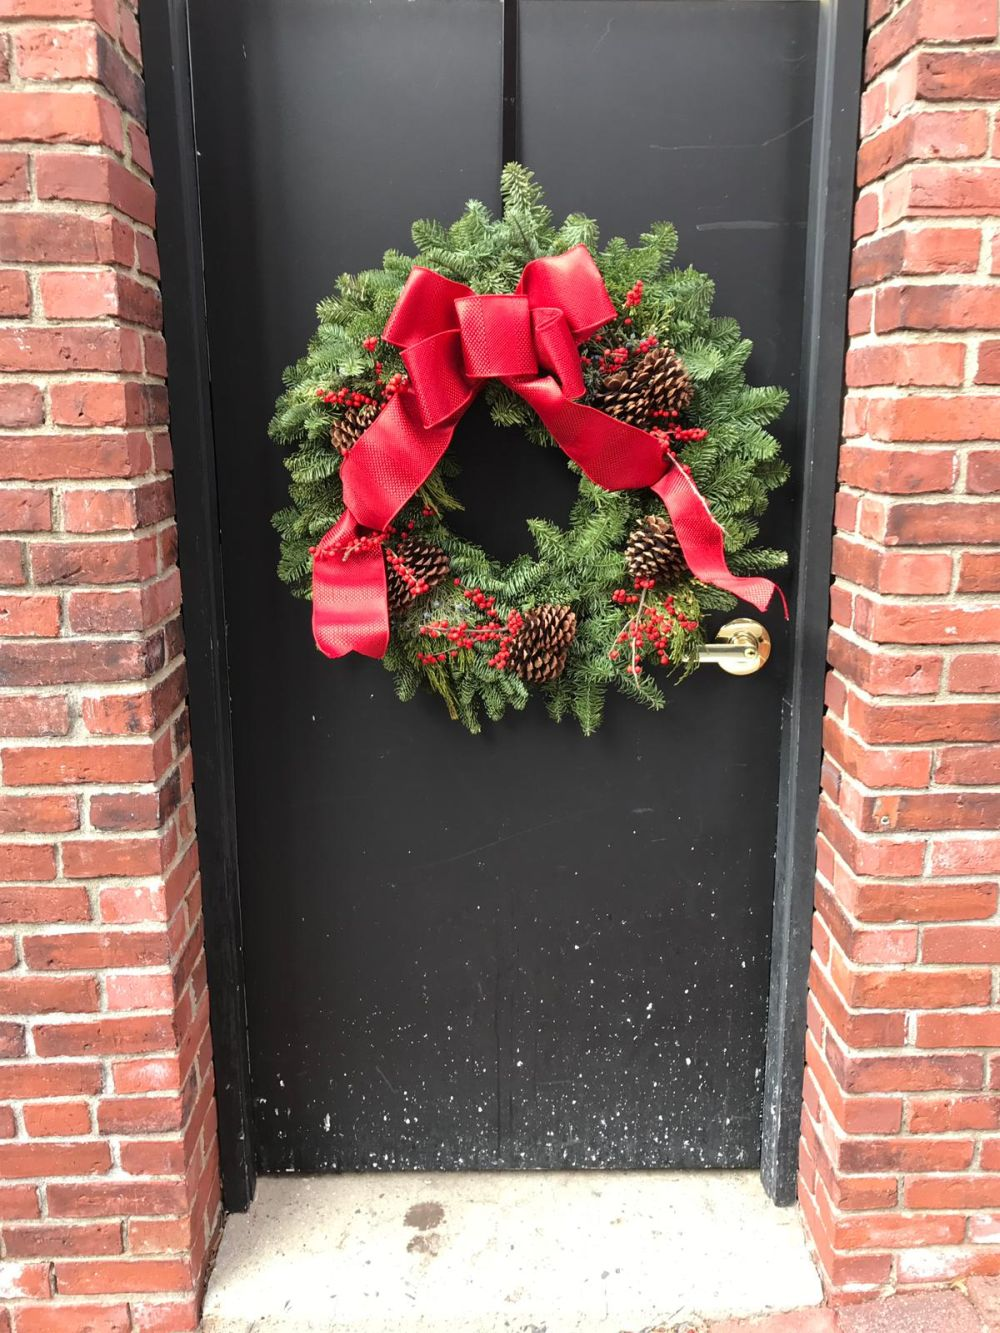 The wreath greets the guests and creates a cheerful and festive vibe right from the entryway